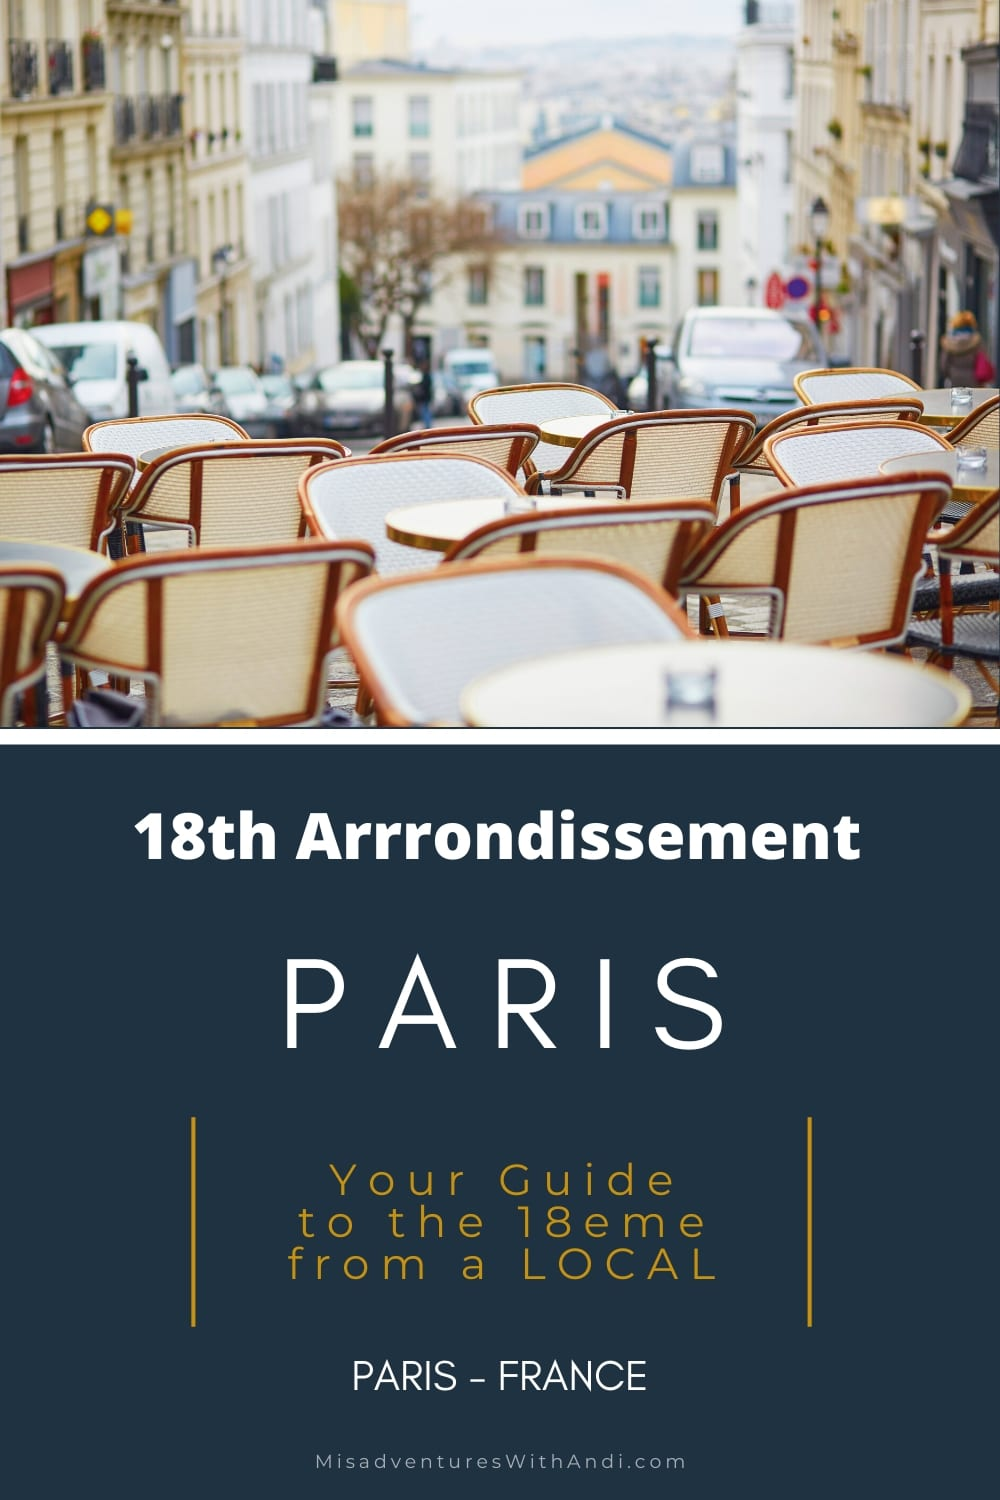 Local Guide to Paris 18th Arrondissement (Montmartre)